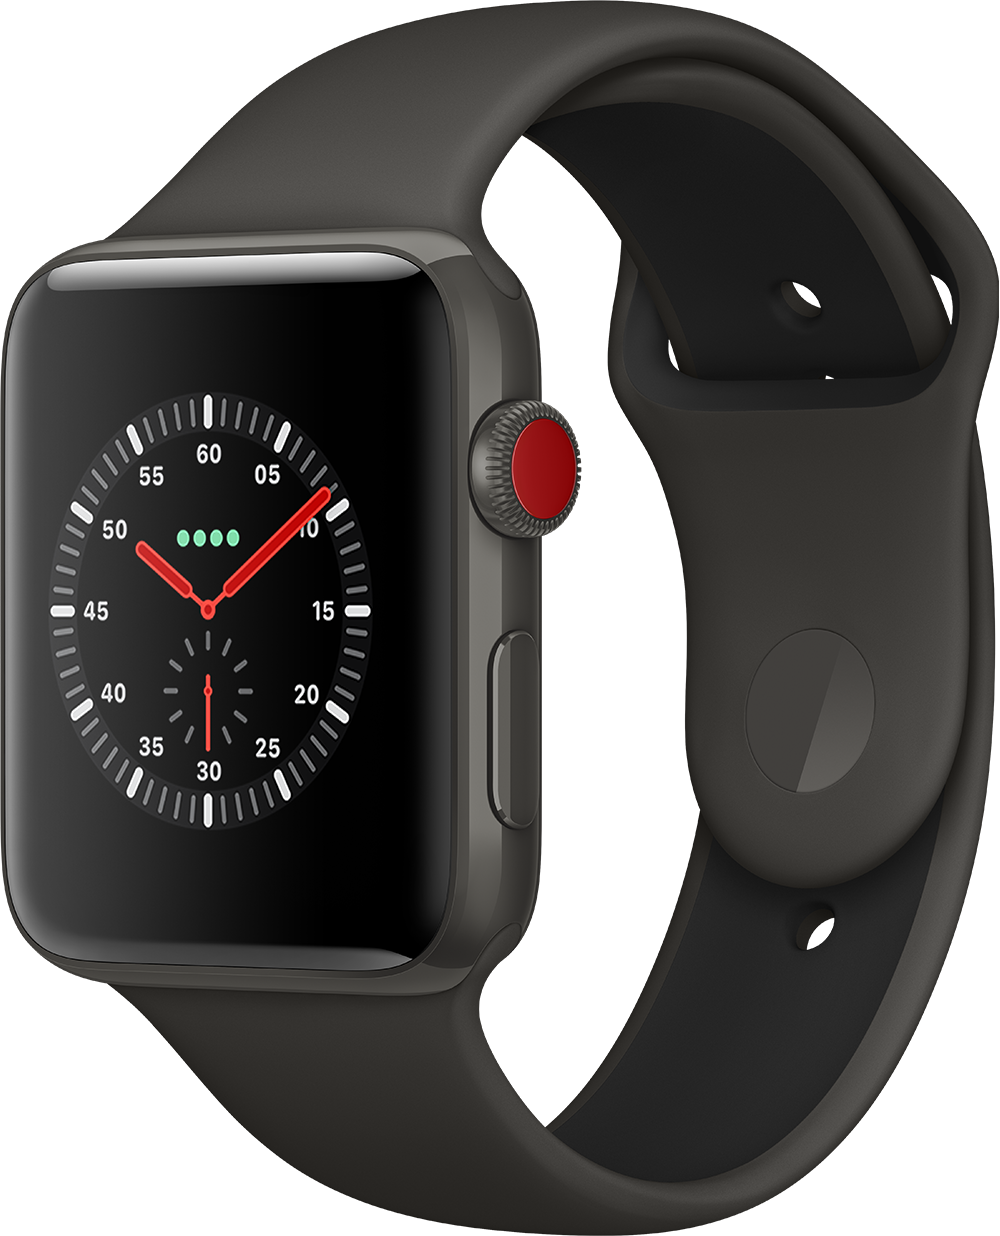 170828_AppleWatch_Series3_Cell_L_34R_Edition_Gray_SportBand_Gray_WatchOS4_Clock_Explorer-19407.png